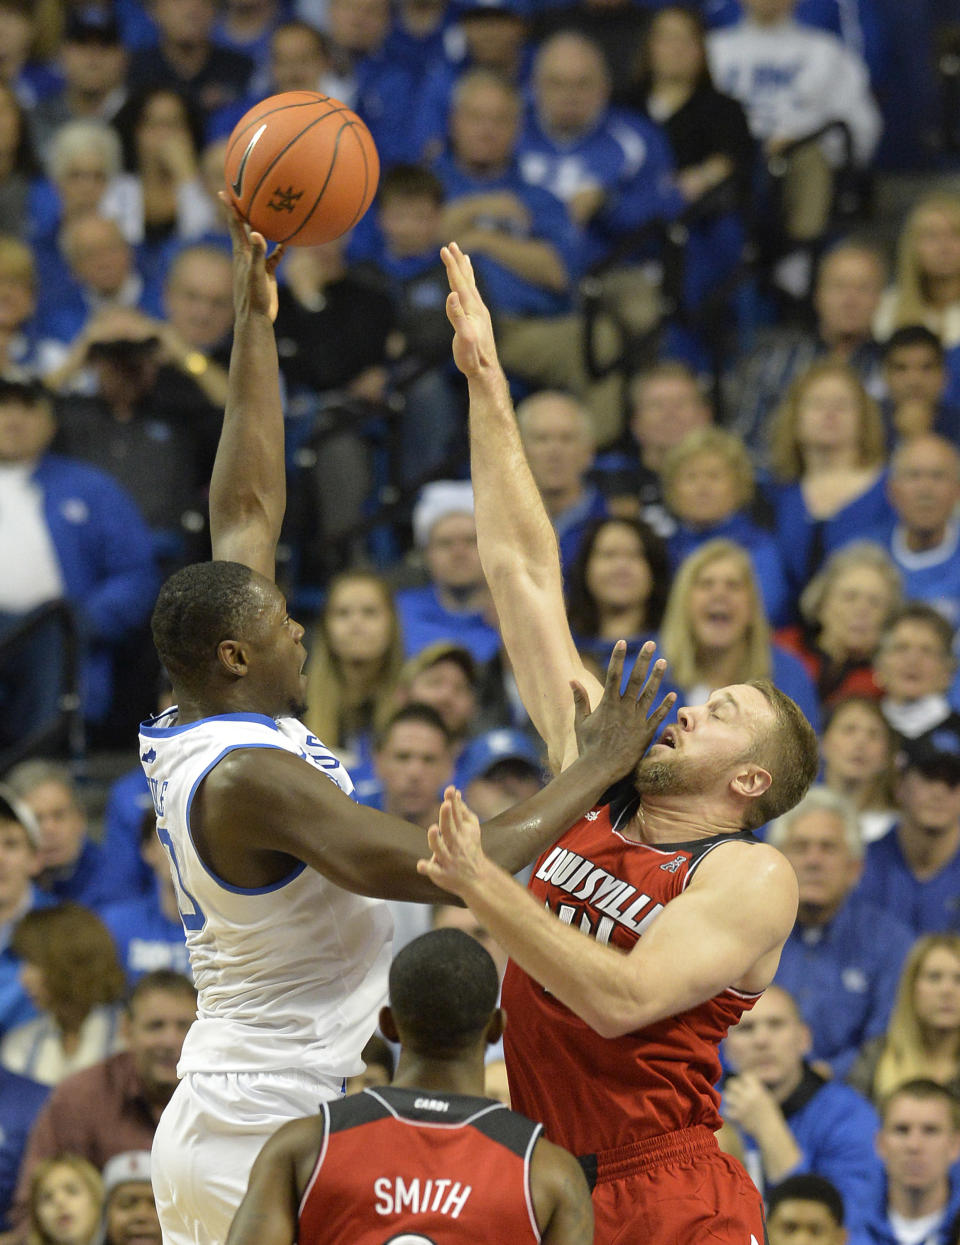 Kentucky's Julius Randle, left, shoots over the defense of Louisville Stephan Van Treese during the first half of an NCAA college basketball game on Saturday, Dec. 28, 2013, in Louisville, Ky. (AP Photo/Timothy D. Easley)